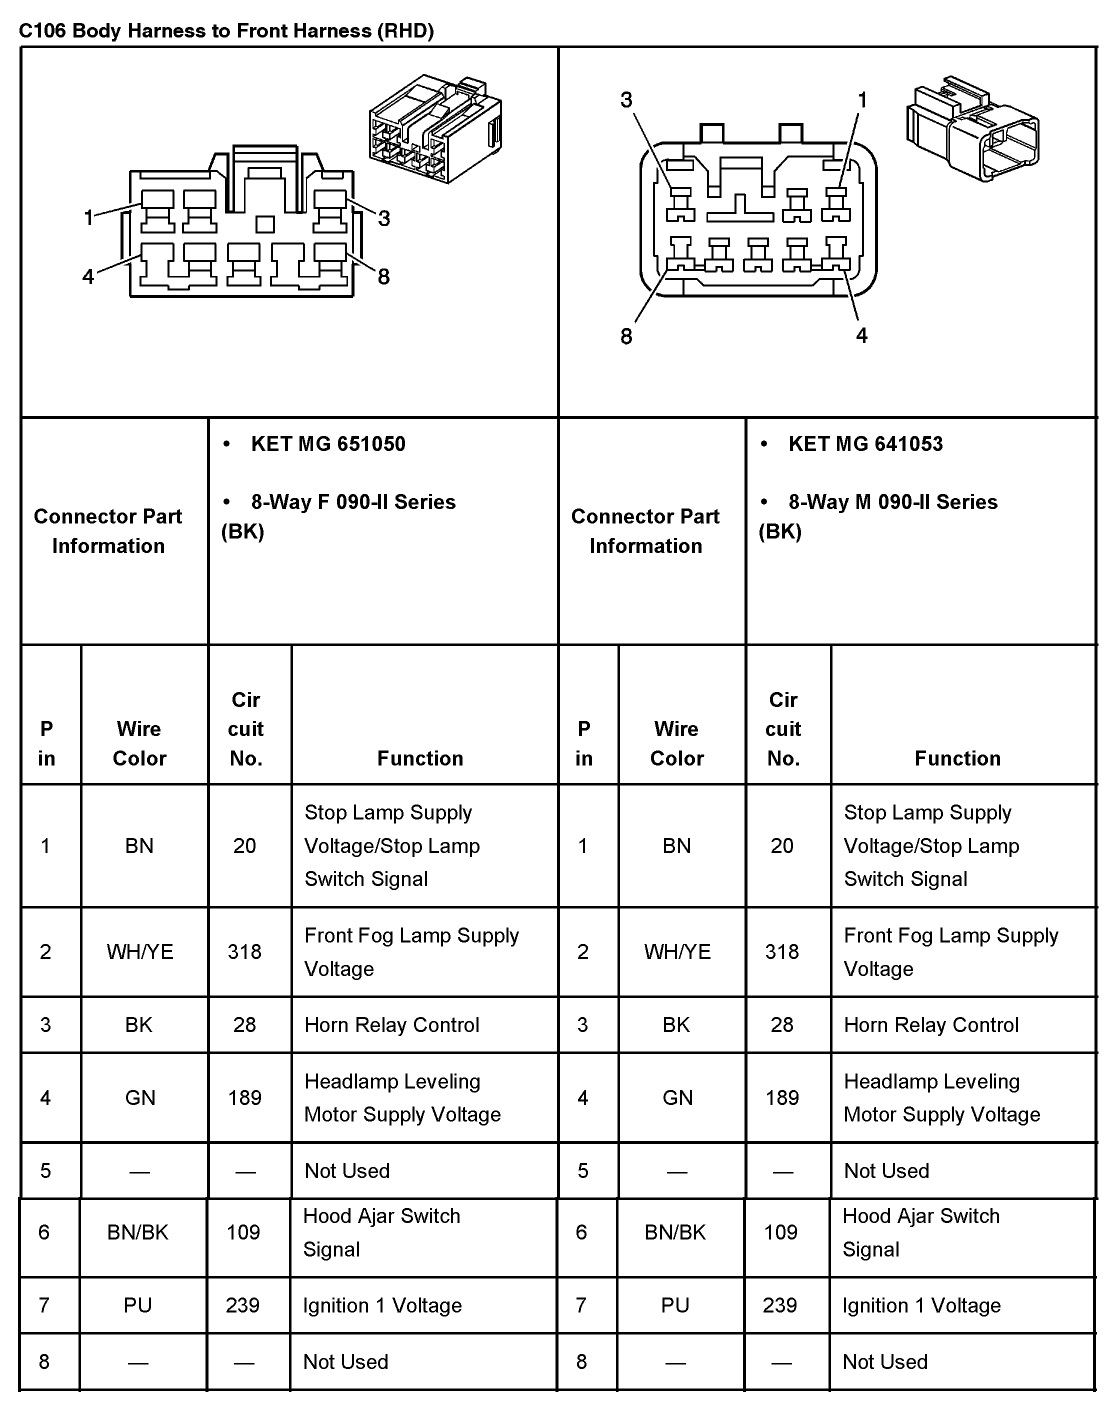 7331d1383704576 2005 aveo master connector list diagrams conn3 jpg 2005 aveo master connector list and diagrams 2009 chevy aveo fuse box location at mifinder.co